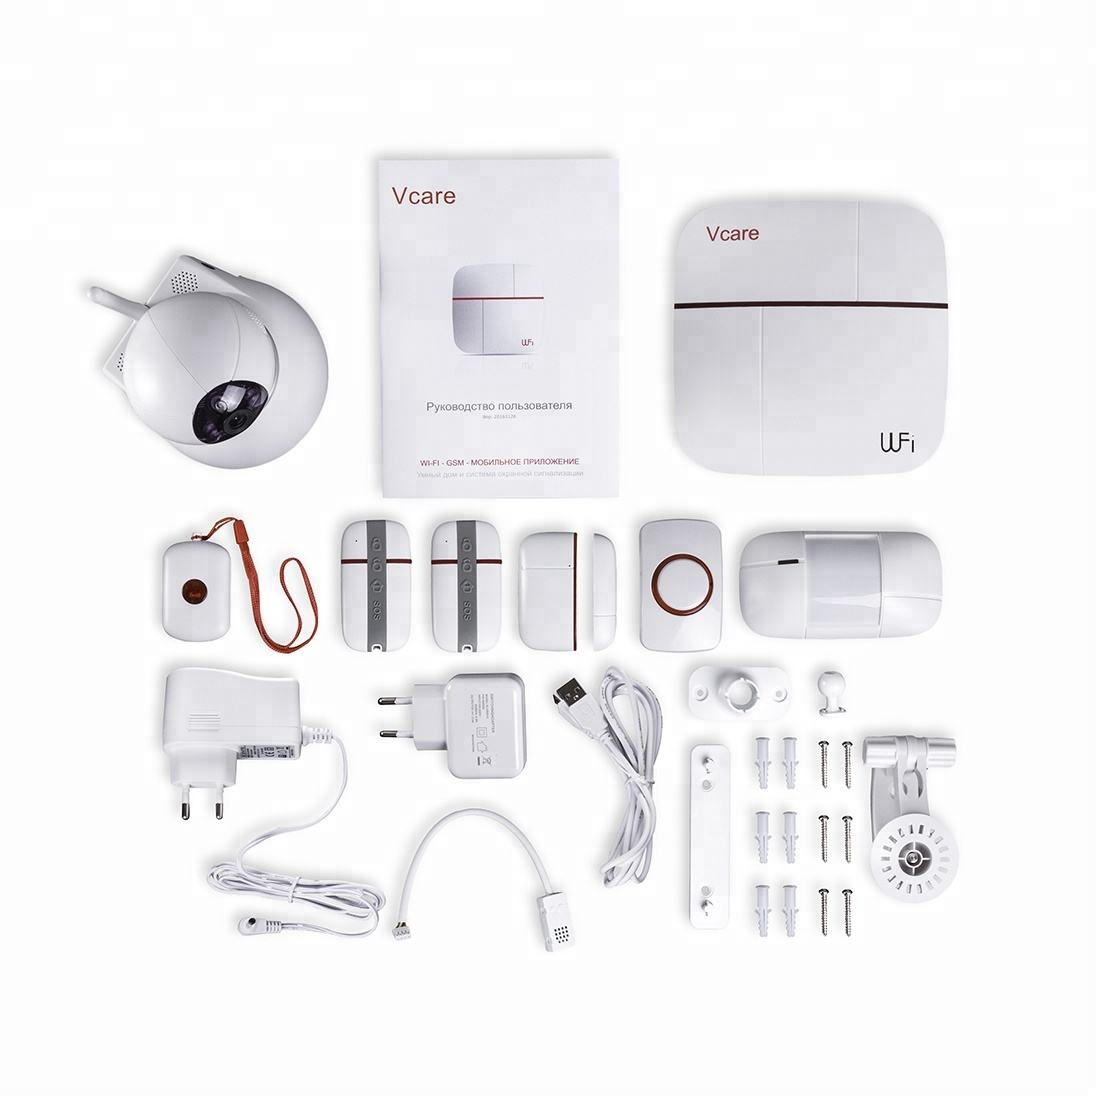 Hot sale! LoRa 433MHz Vcare Smart Wi-Fi GSM Alarm System Wireless Home Security Camera System